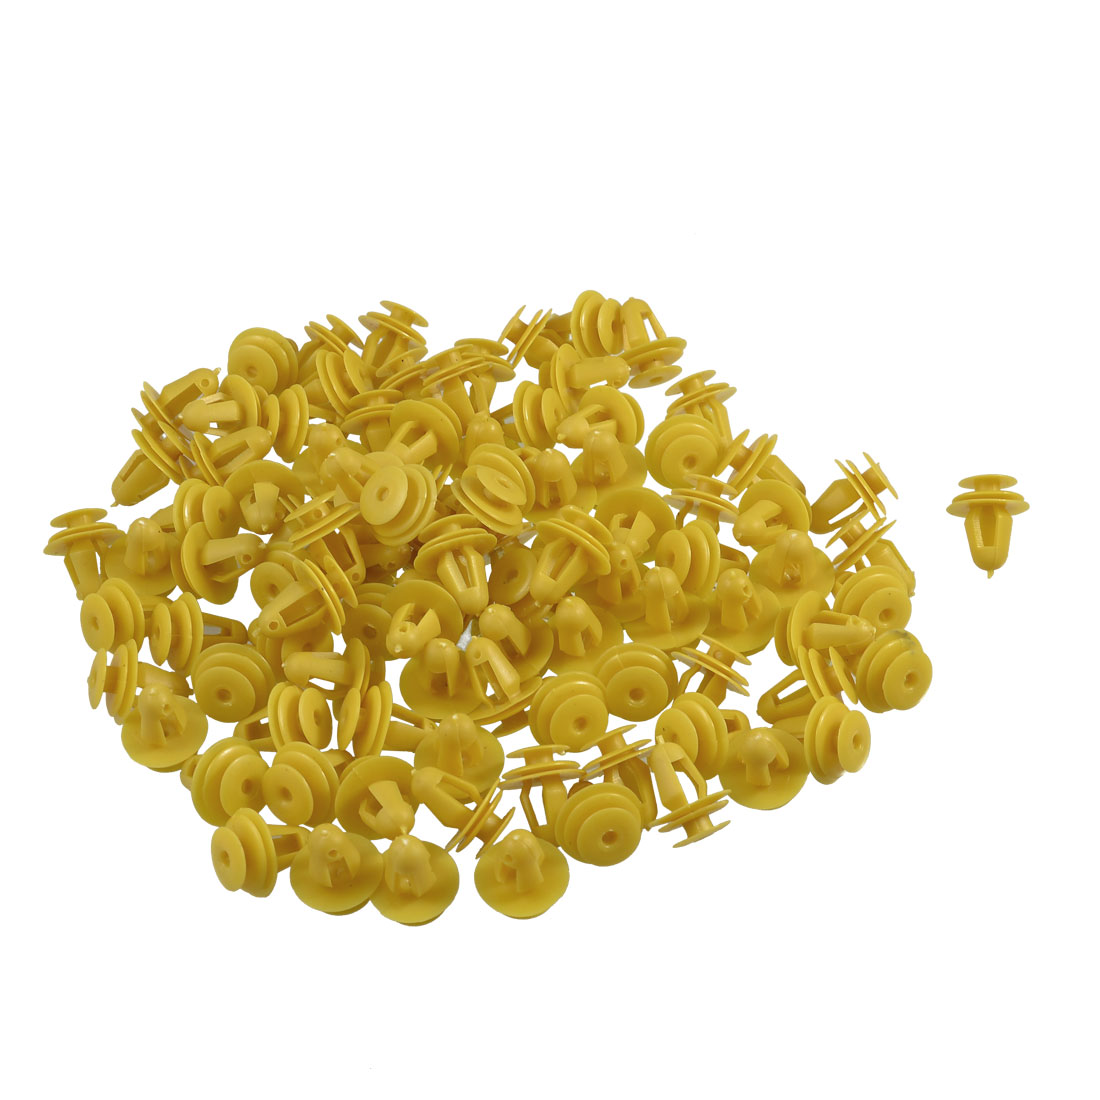 100 Pcs Auto Car Fender Yellow Plastic Rivets Fasteners 17mm x 14mm x 10mm